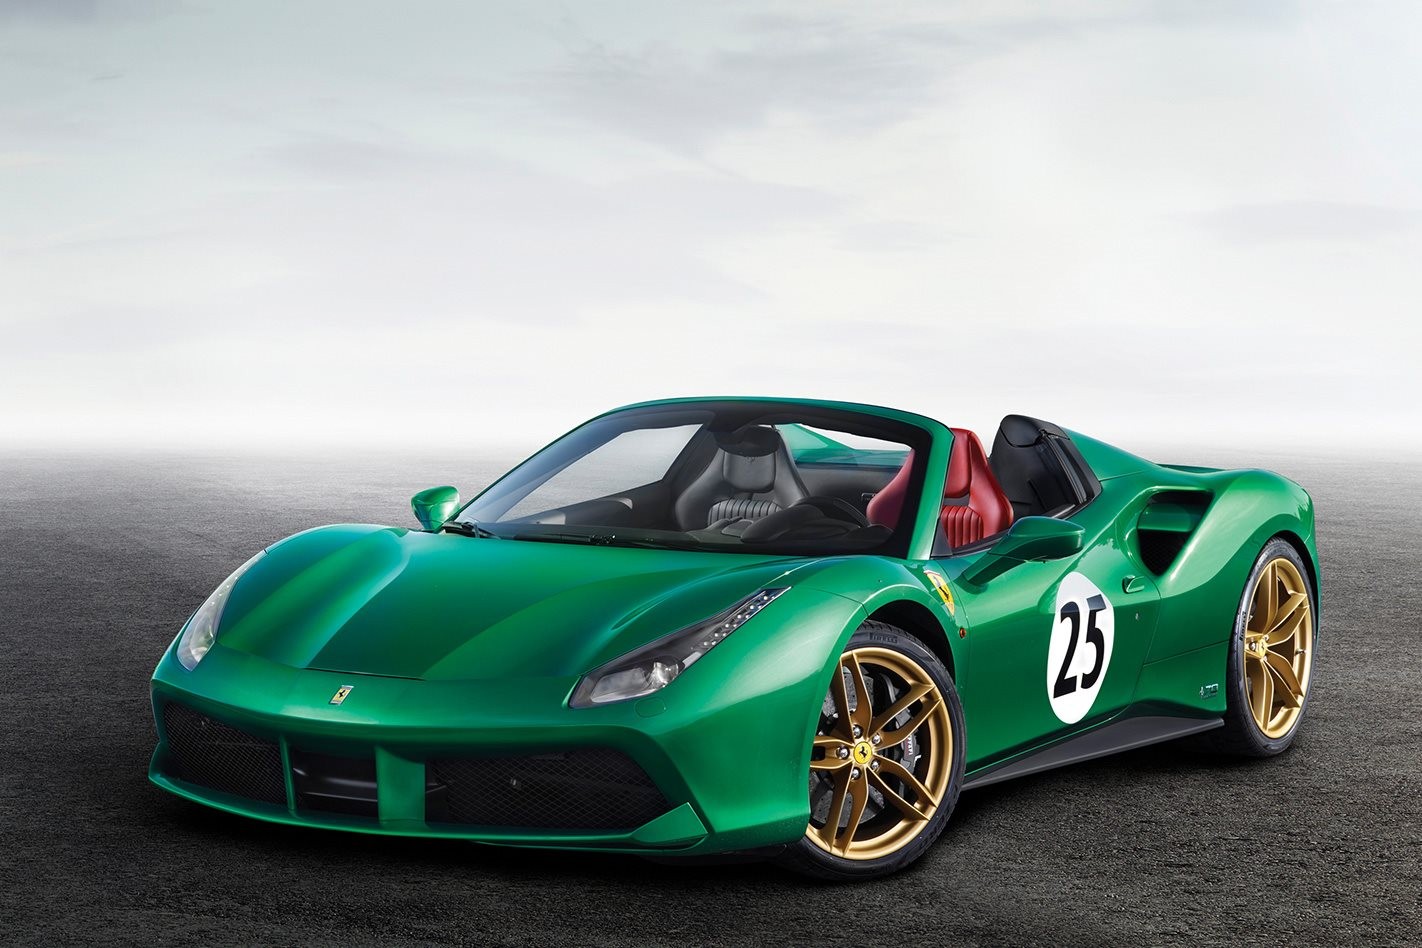 2016 Ferrari 488 Spider Green Jewel